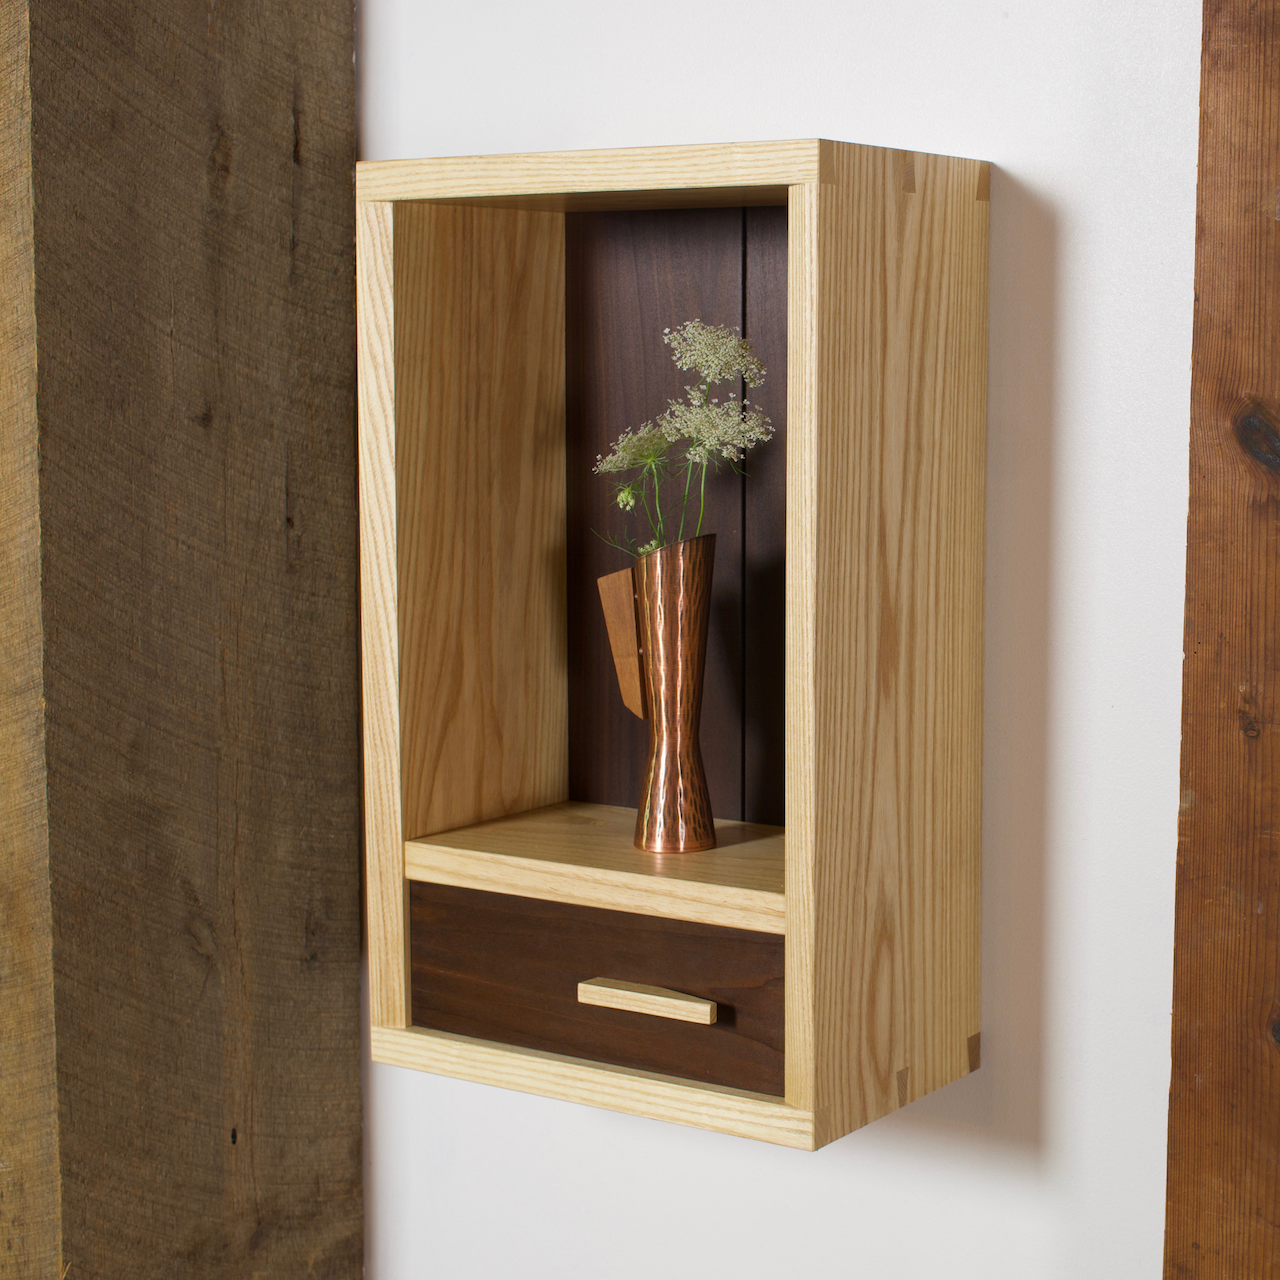 Toko Cabinet